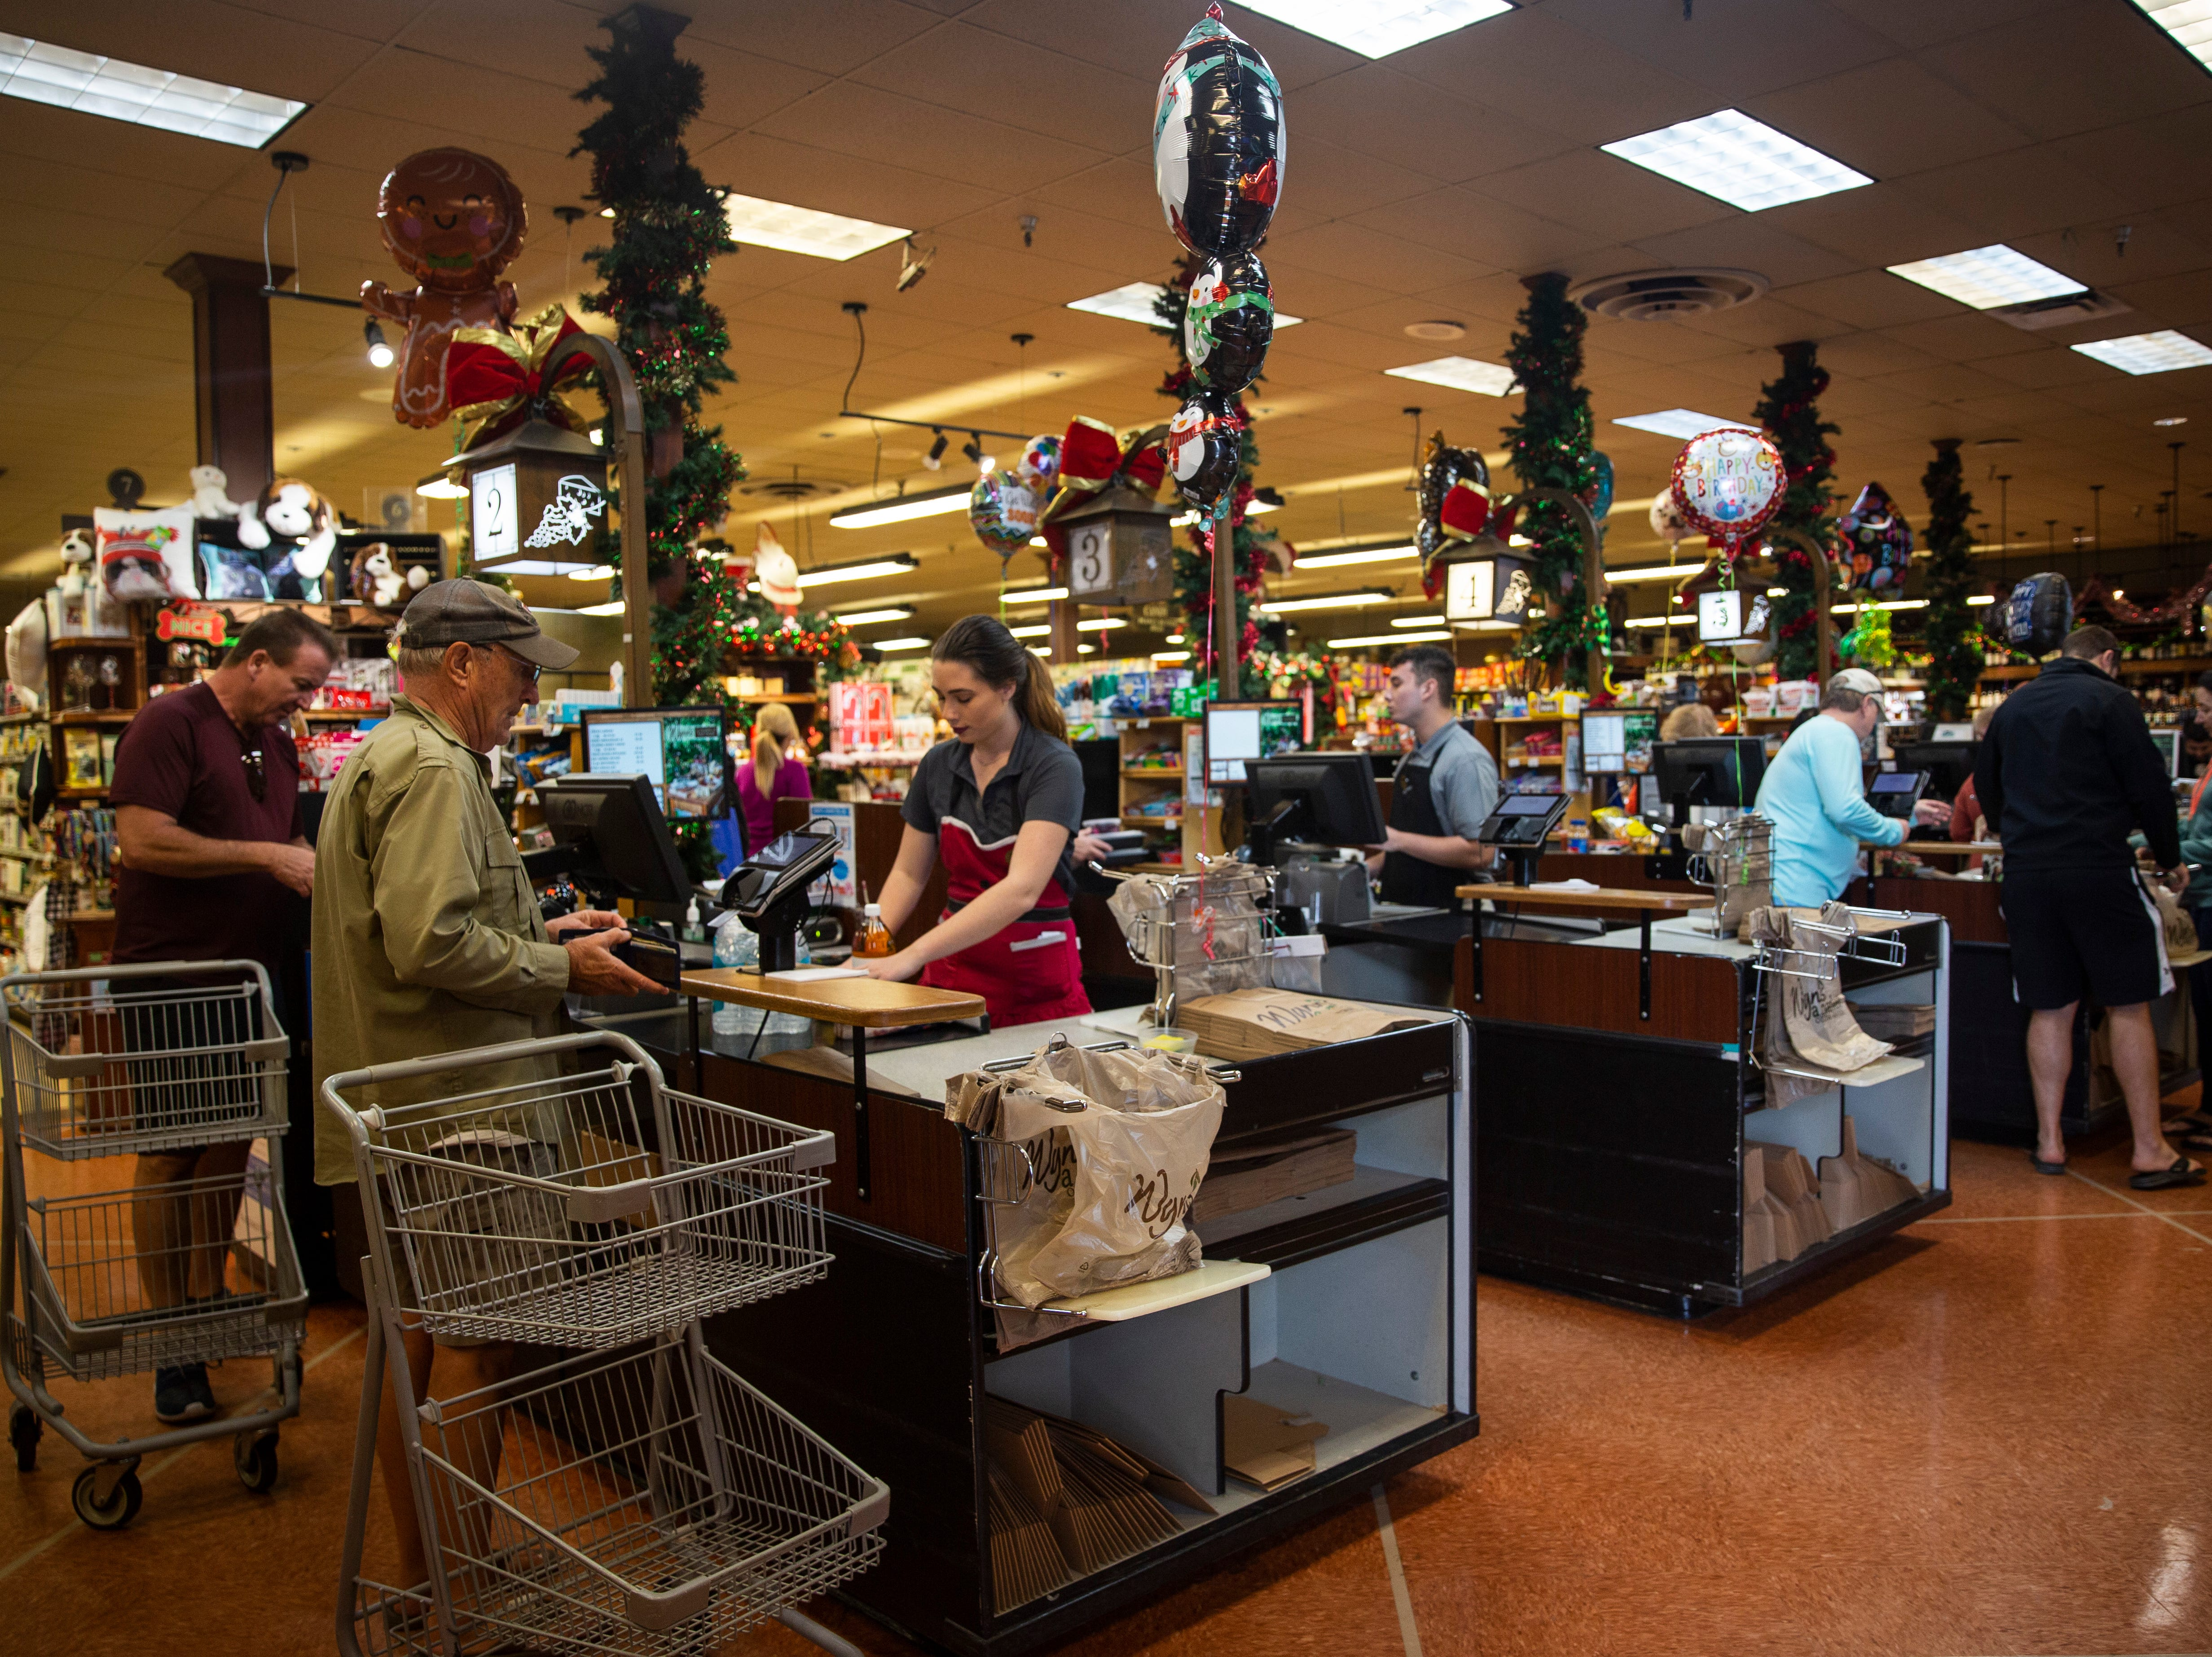 Customers check out after shopping on Friday, Dec. 21, 2018, at Wynn's Market in Naples. Wynn's Market is celebrating 80 years of business this year.